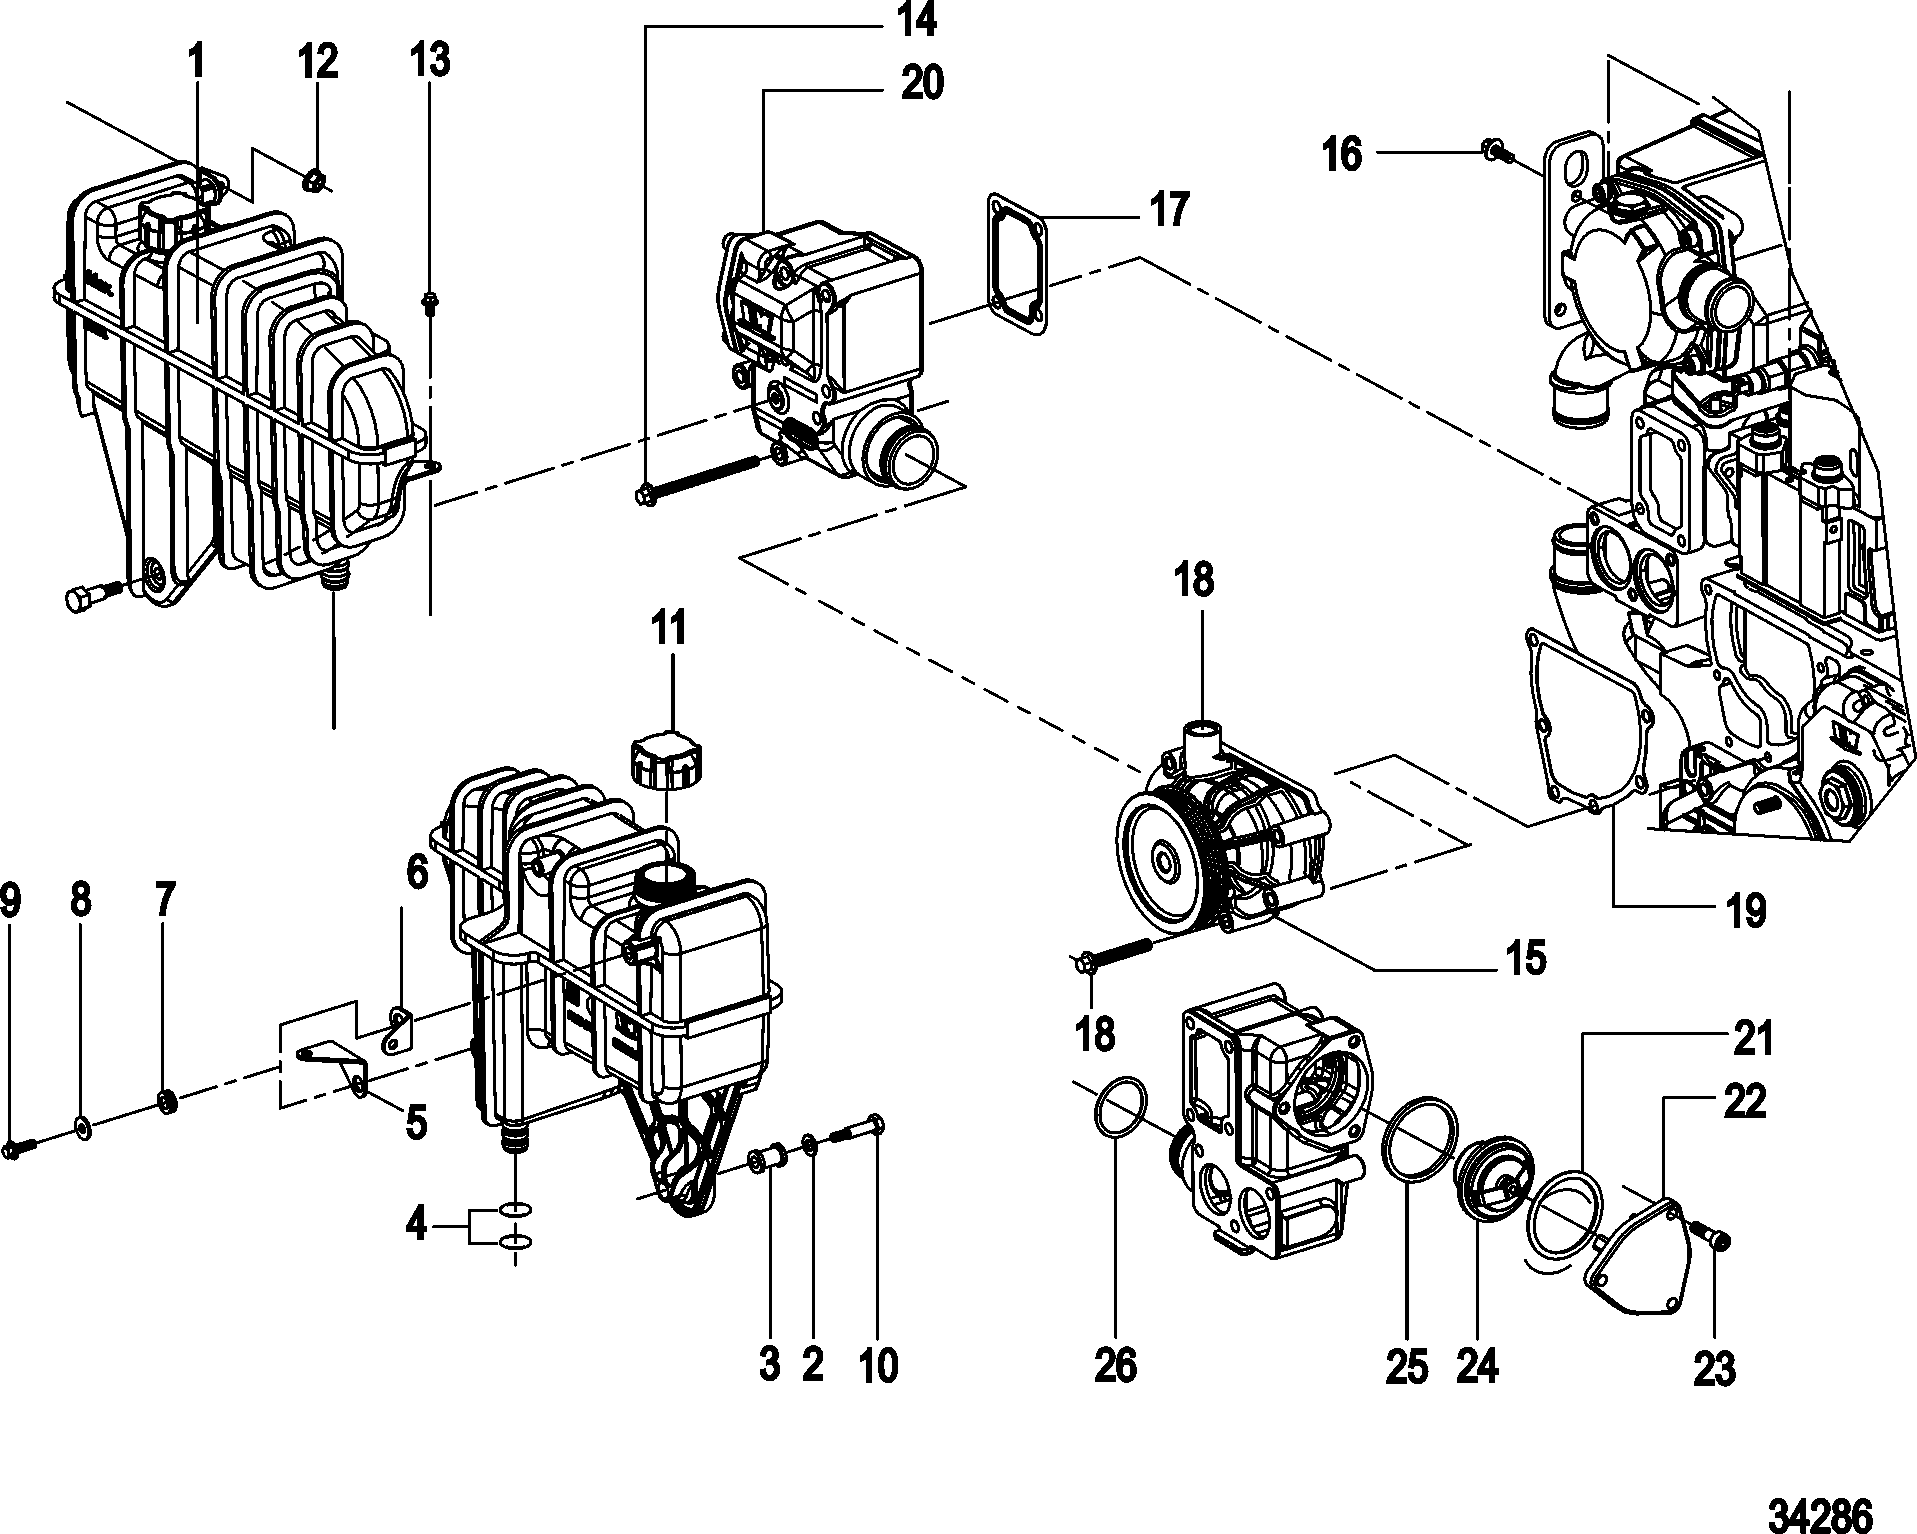 Mercruiser 190 Hp 4 Cylinder Engine Diagram Mercruiser